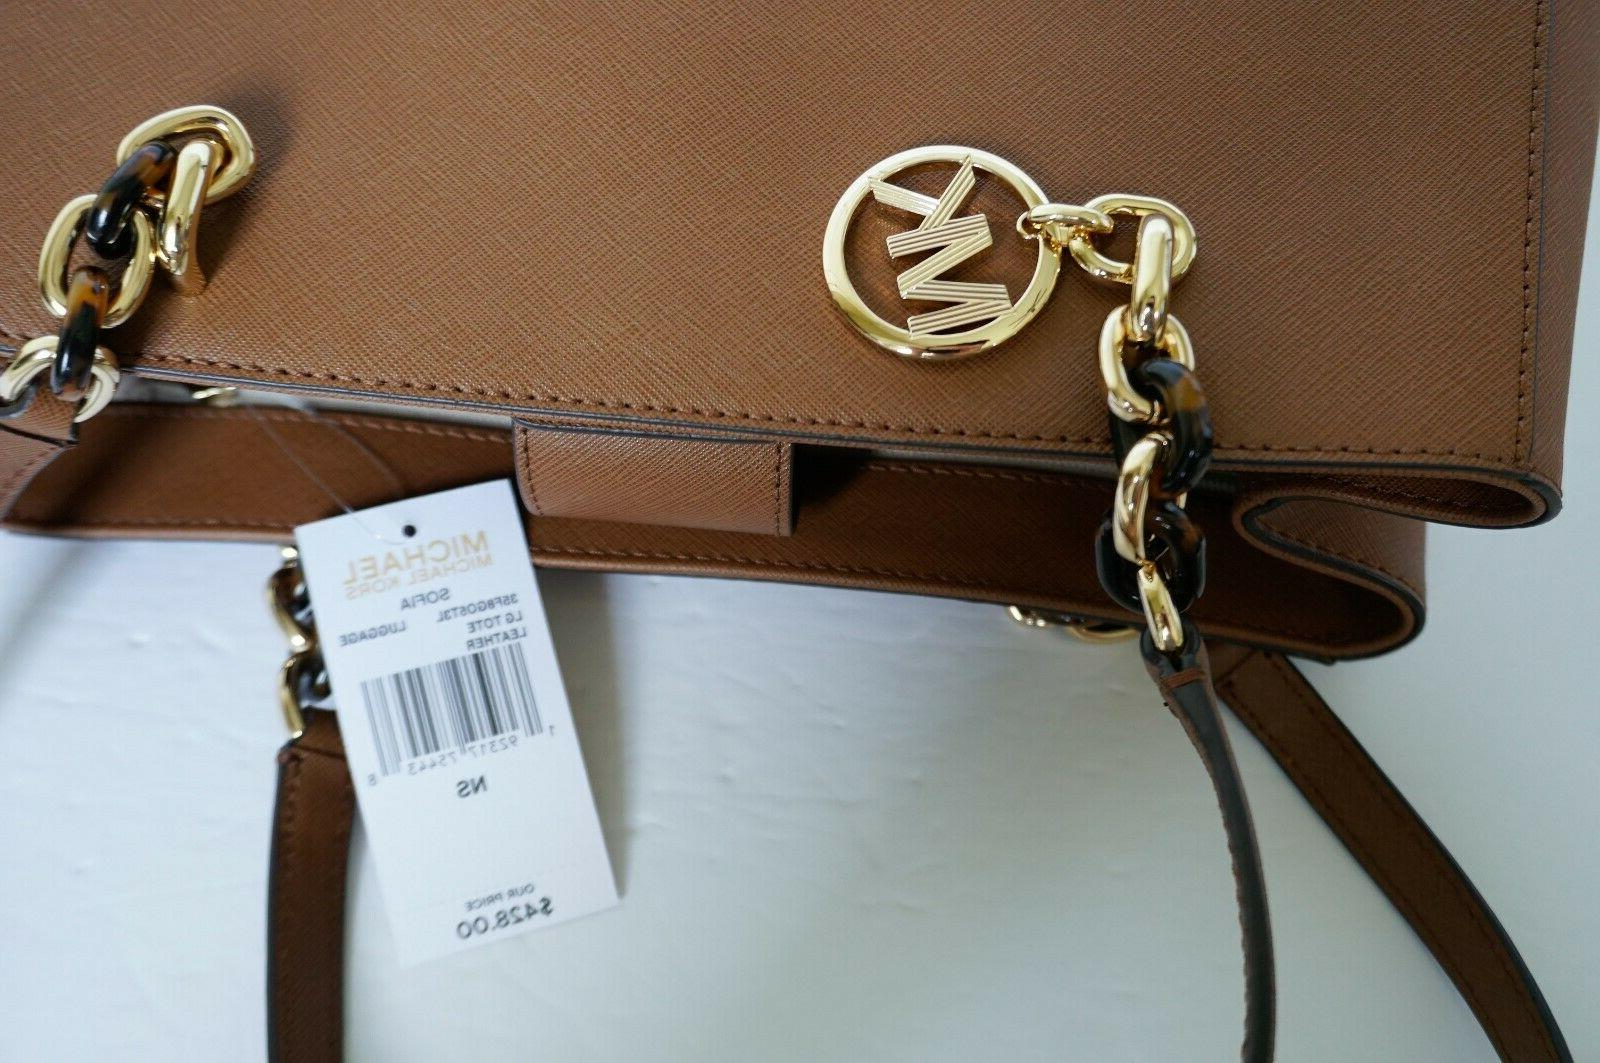 MICHAEL LARGE SAFFIANO LEATHER BAG LUGGAGE